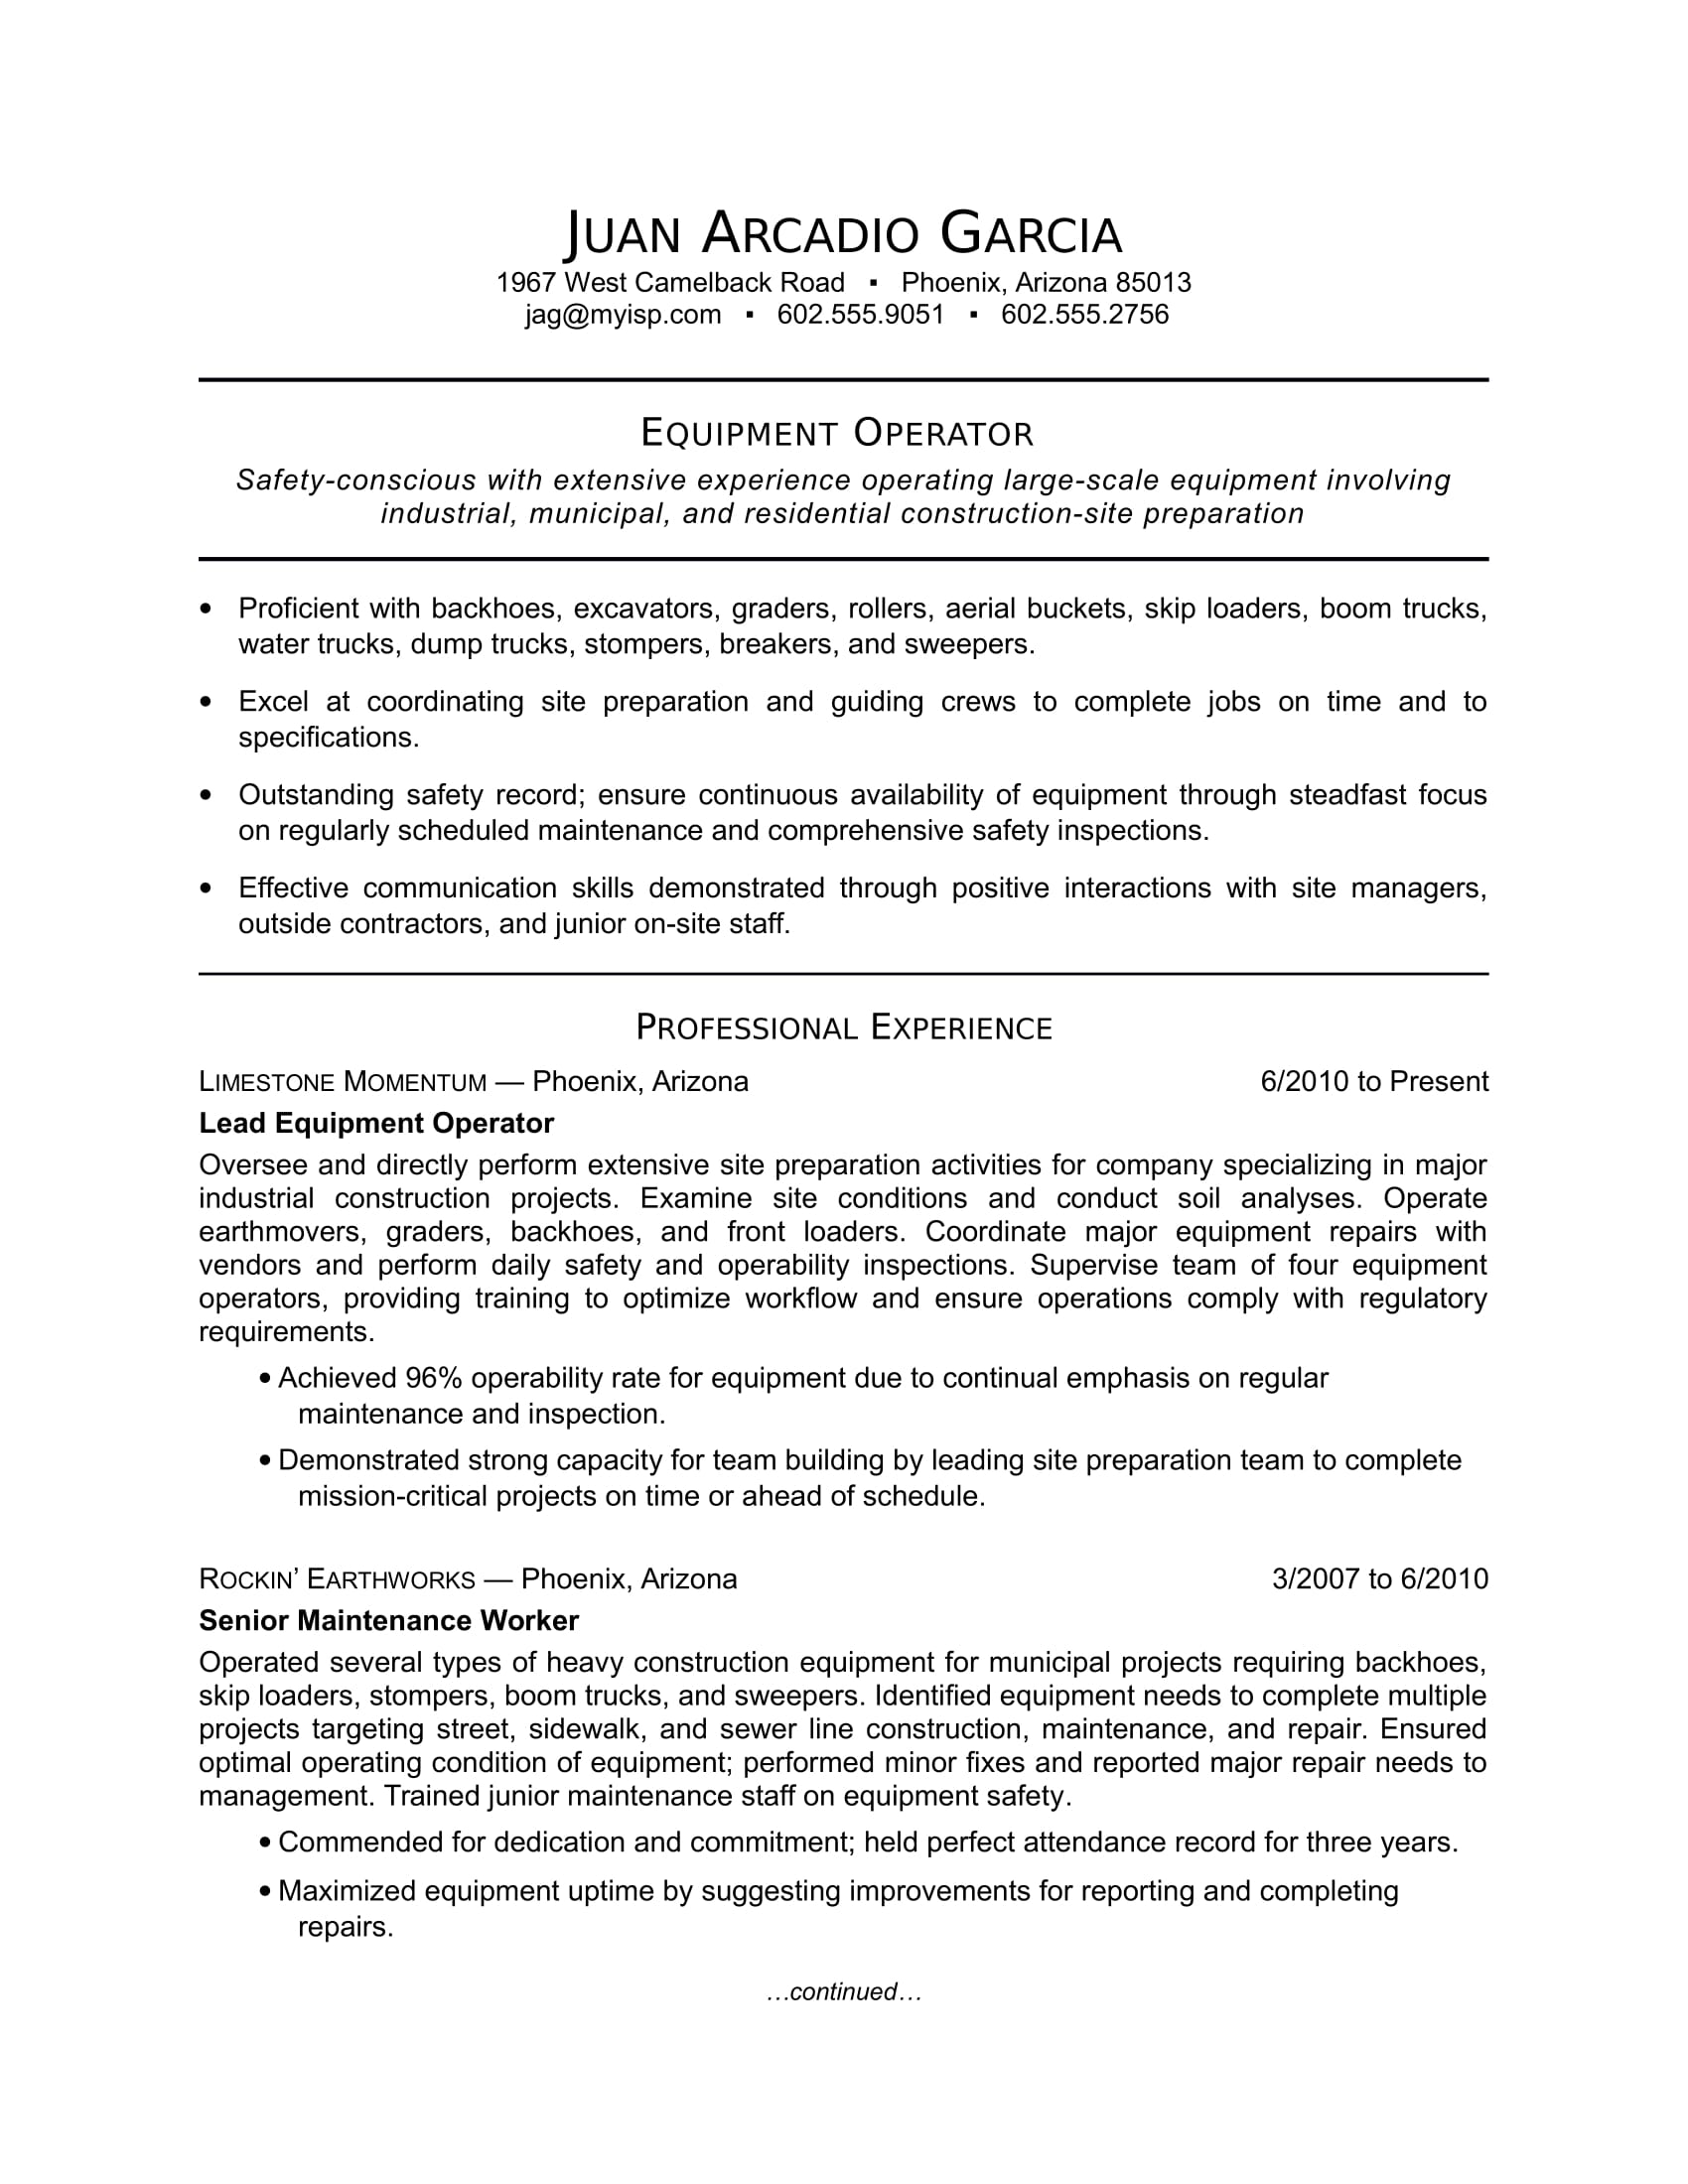 equipment operator resume sample monster for machine position skills janitor modern Resume Sample Resume For Machine Operator Position